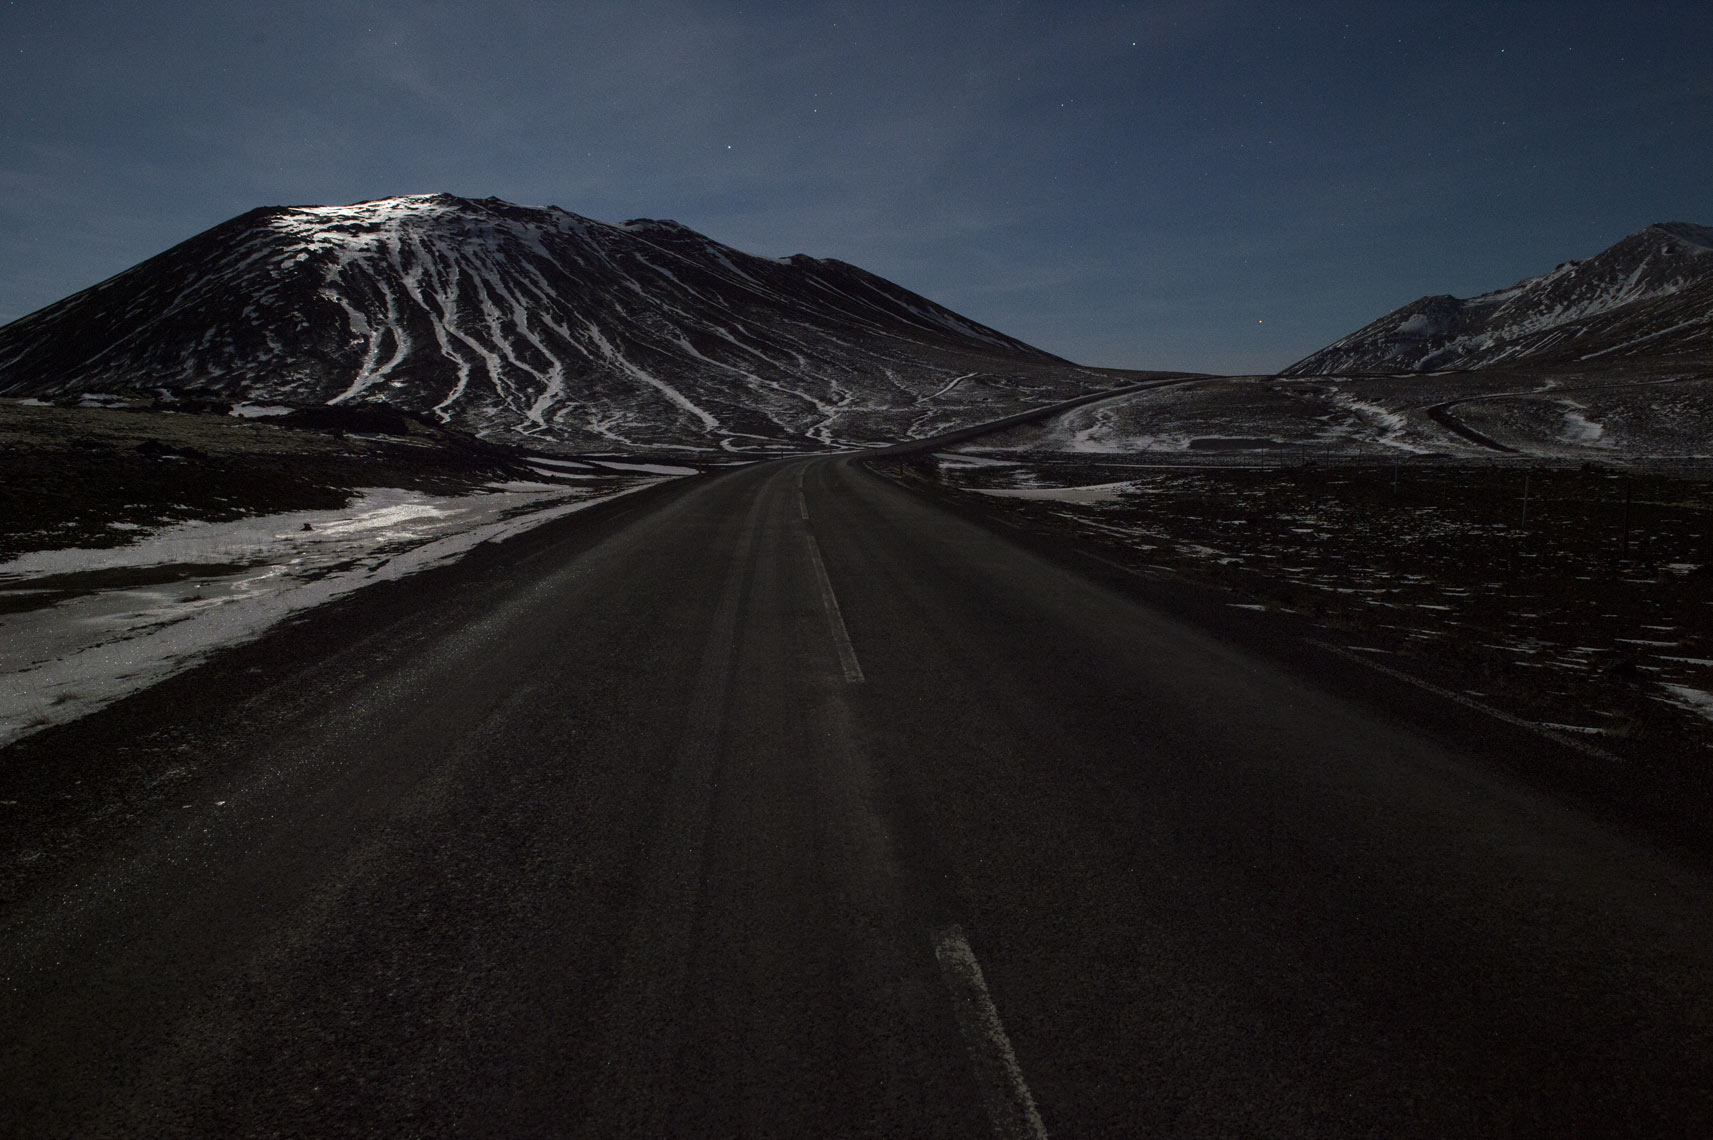 iceland-winter-road-at-night